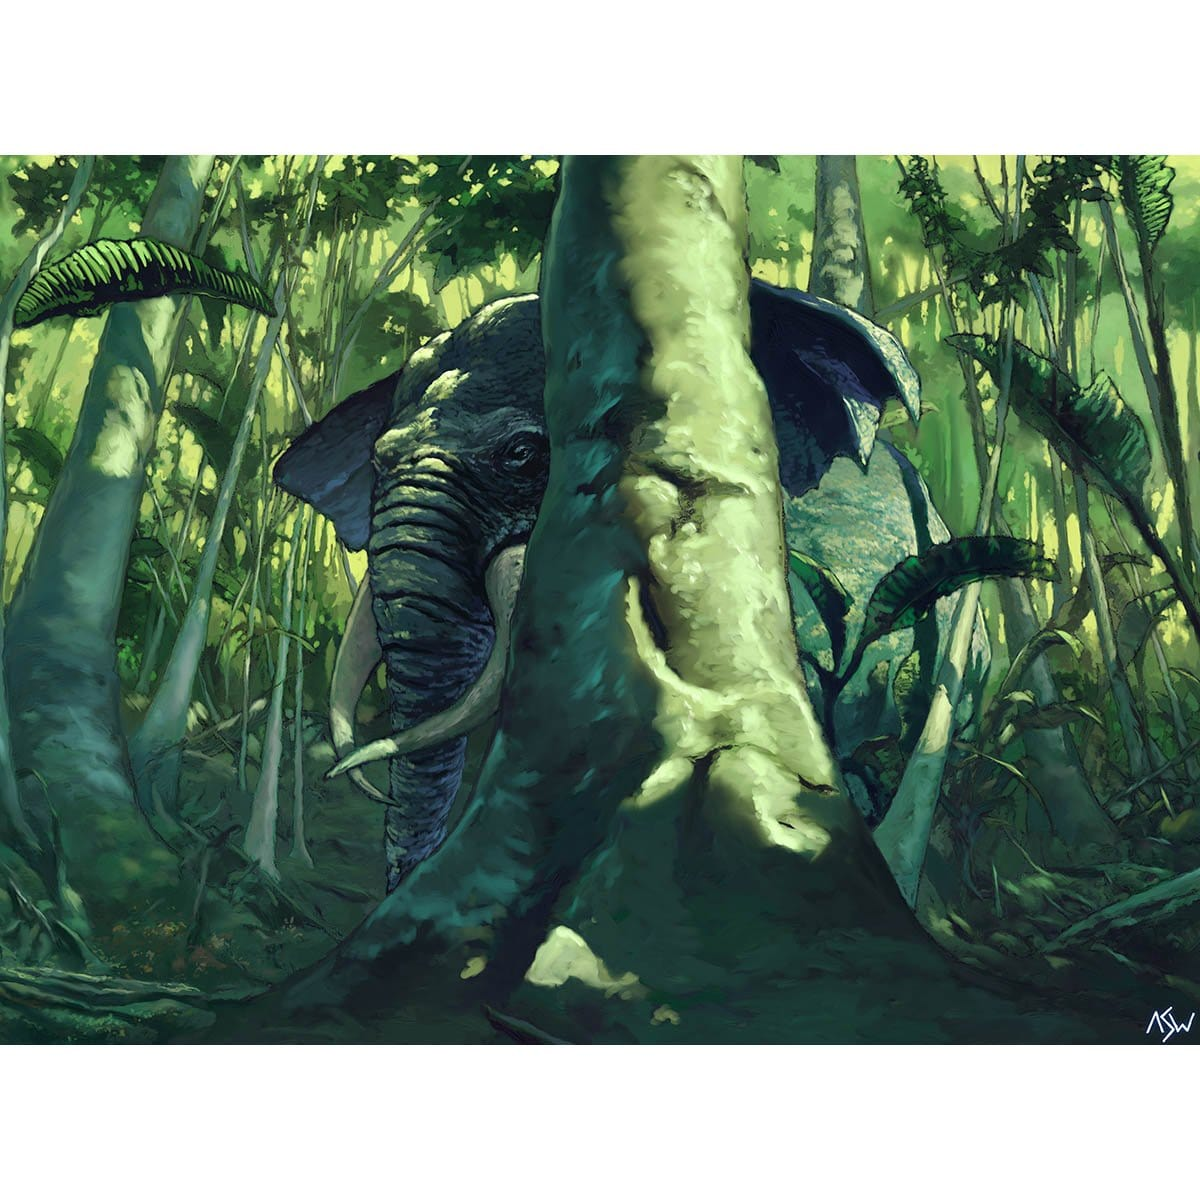 Elephant Ambush Print - Print - Original Magic Art - Accessories for Magic the Gathering and other card games